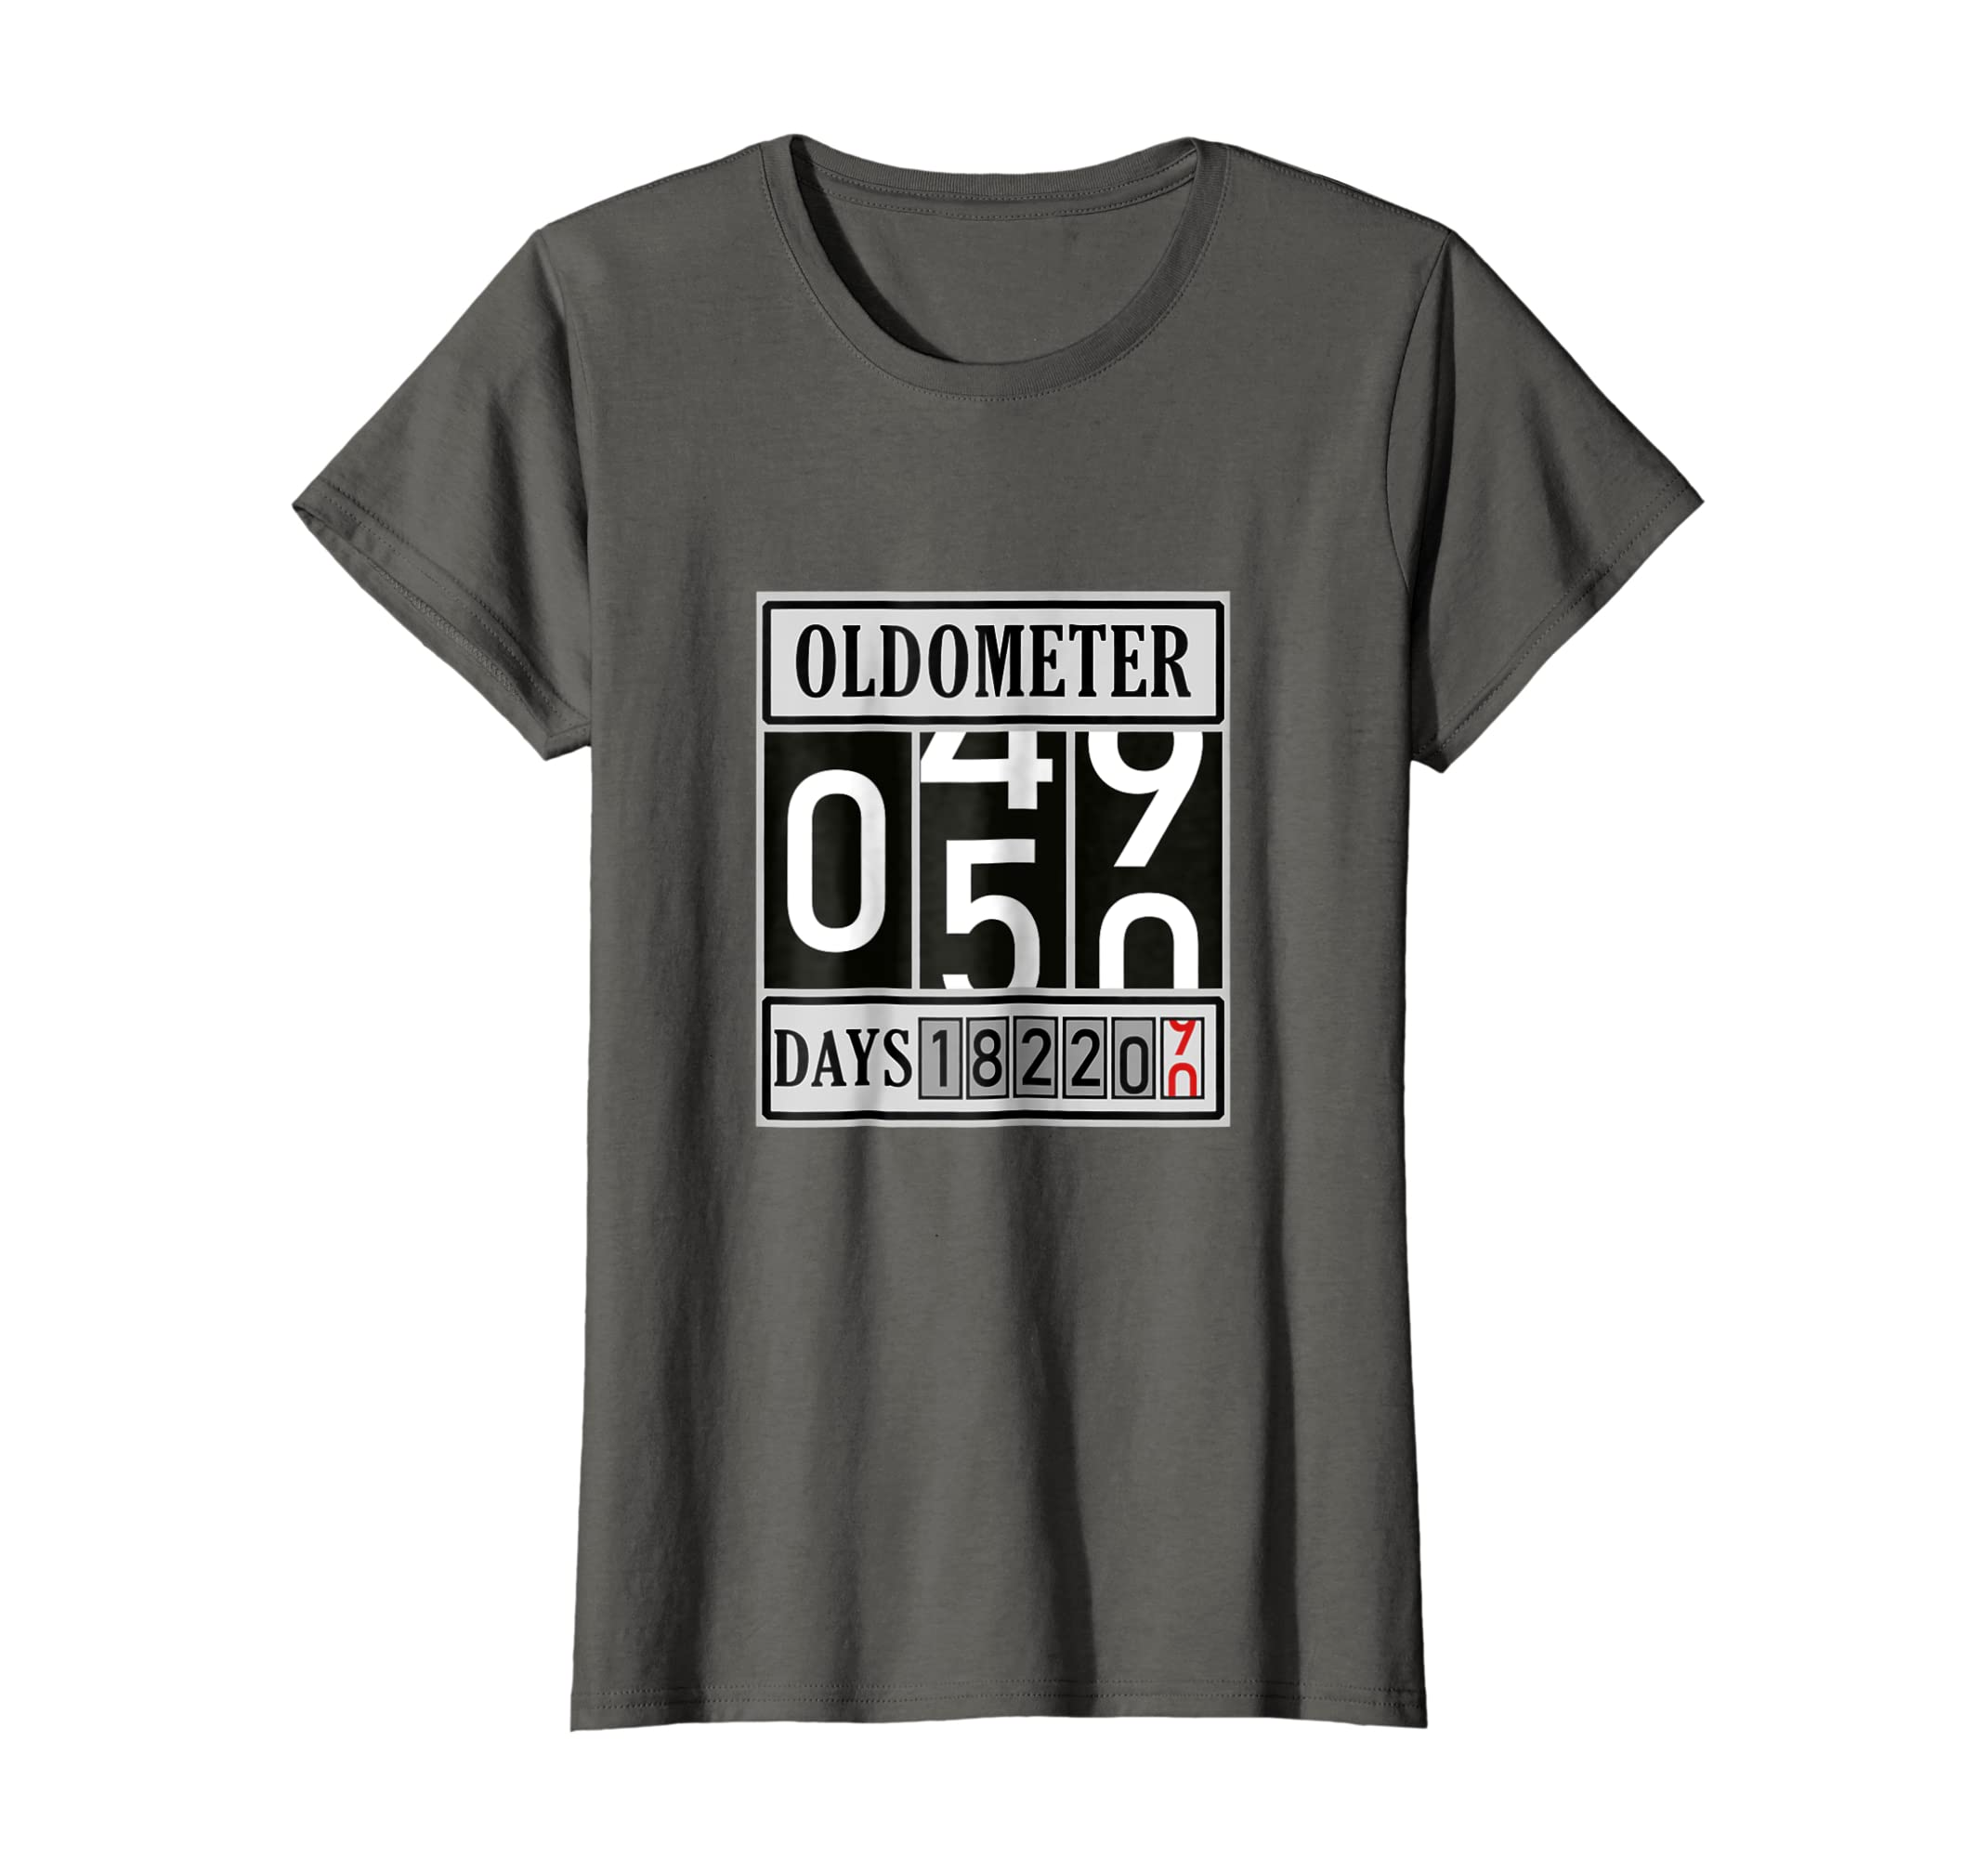 b51aca31 Amazon.com: OLDOMETER 50 Years Old T-Shirt Made In 1968 50th Birthday:  Clothing